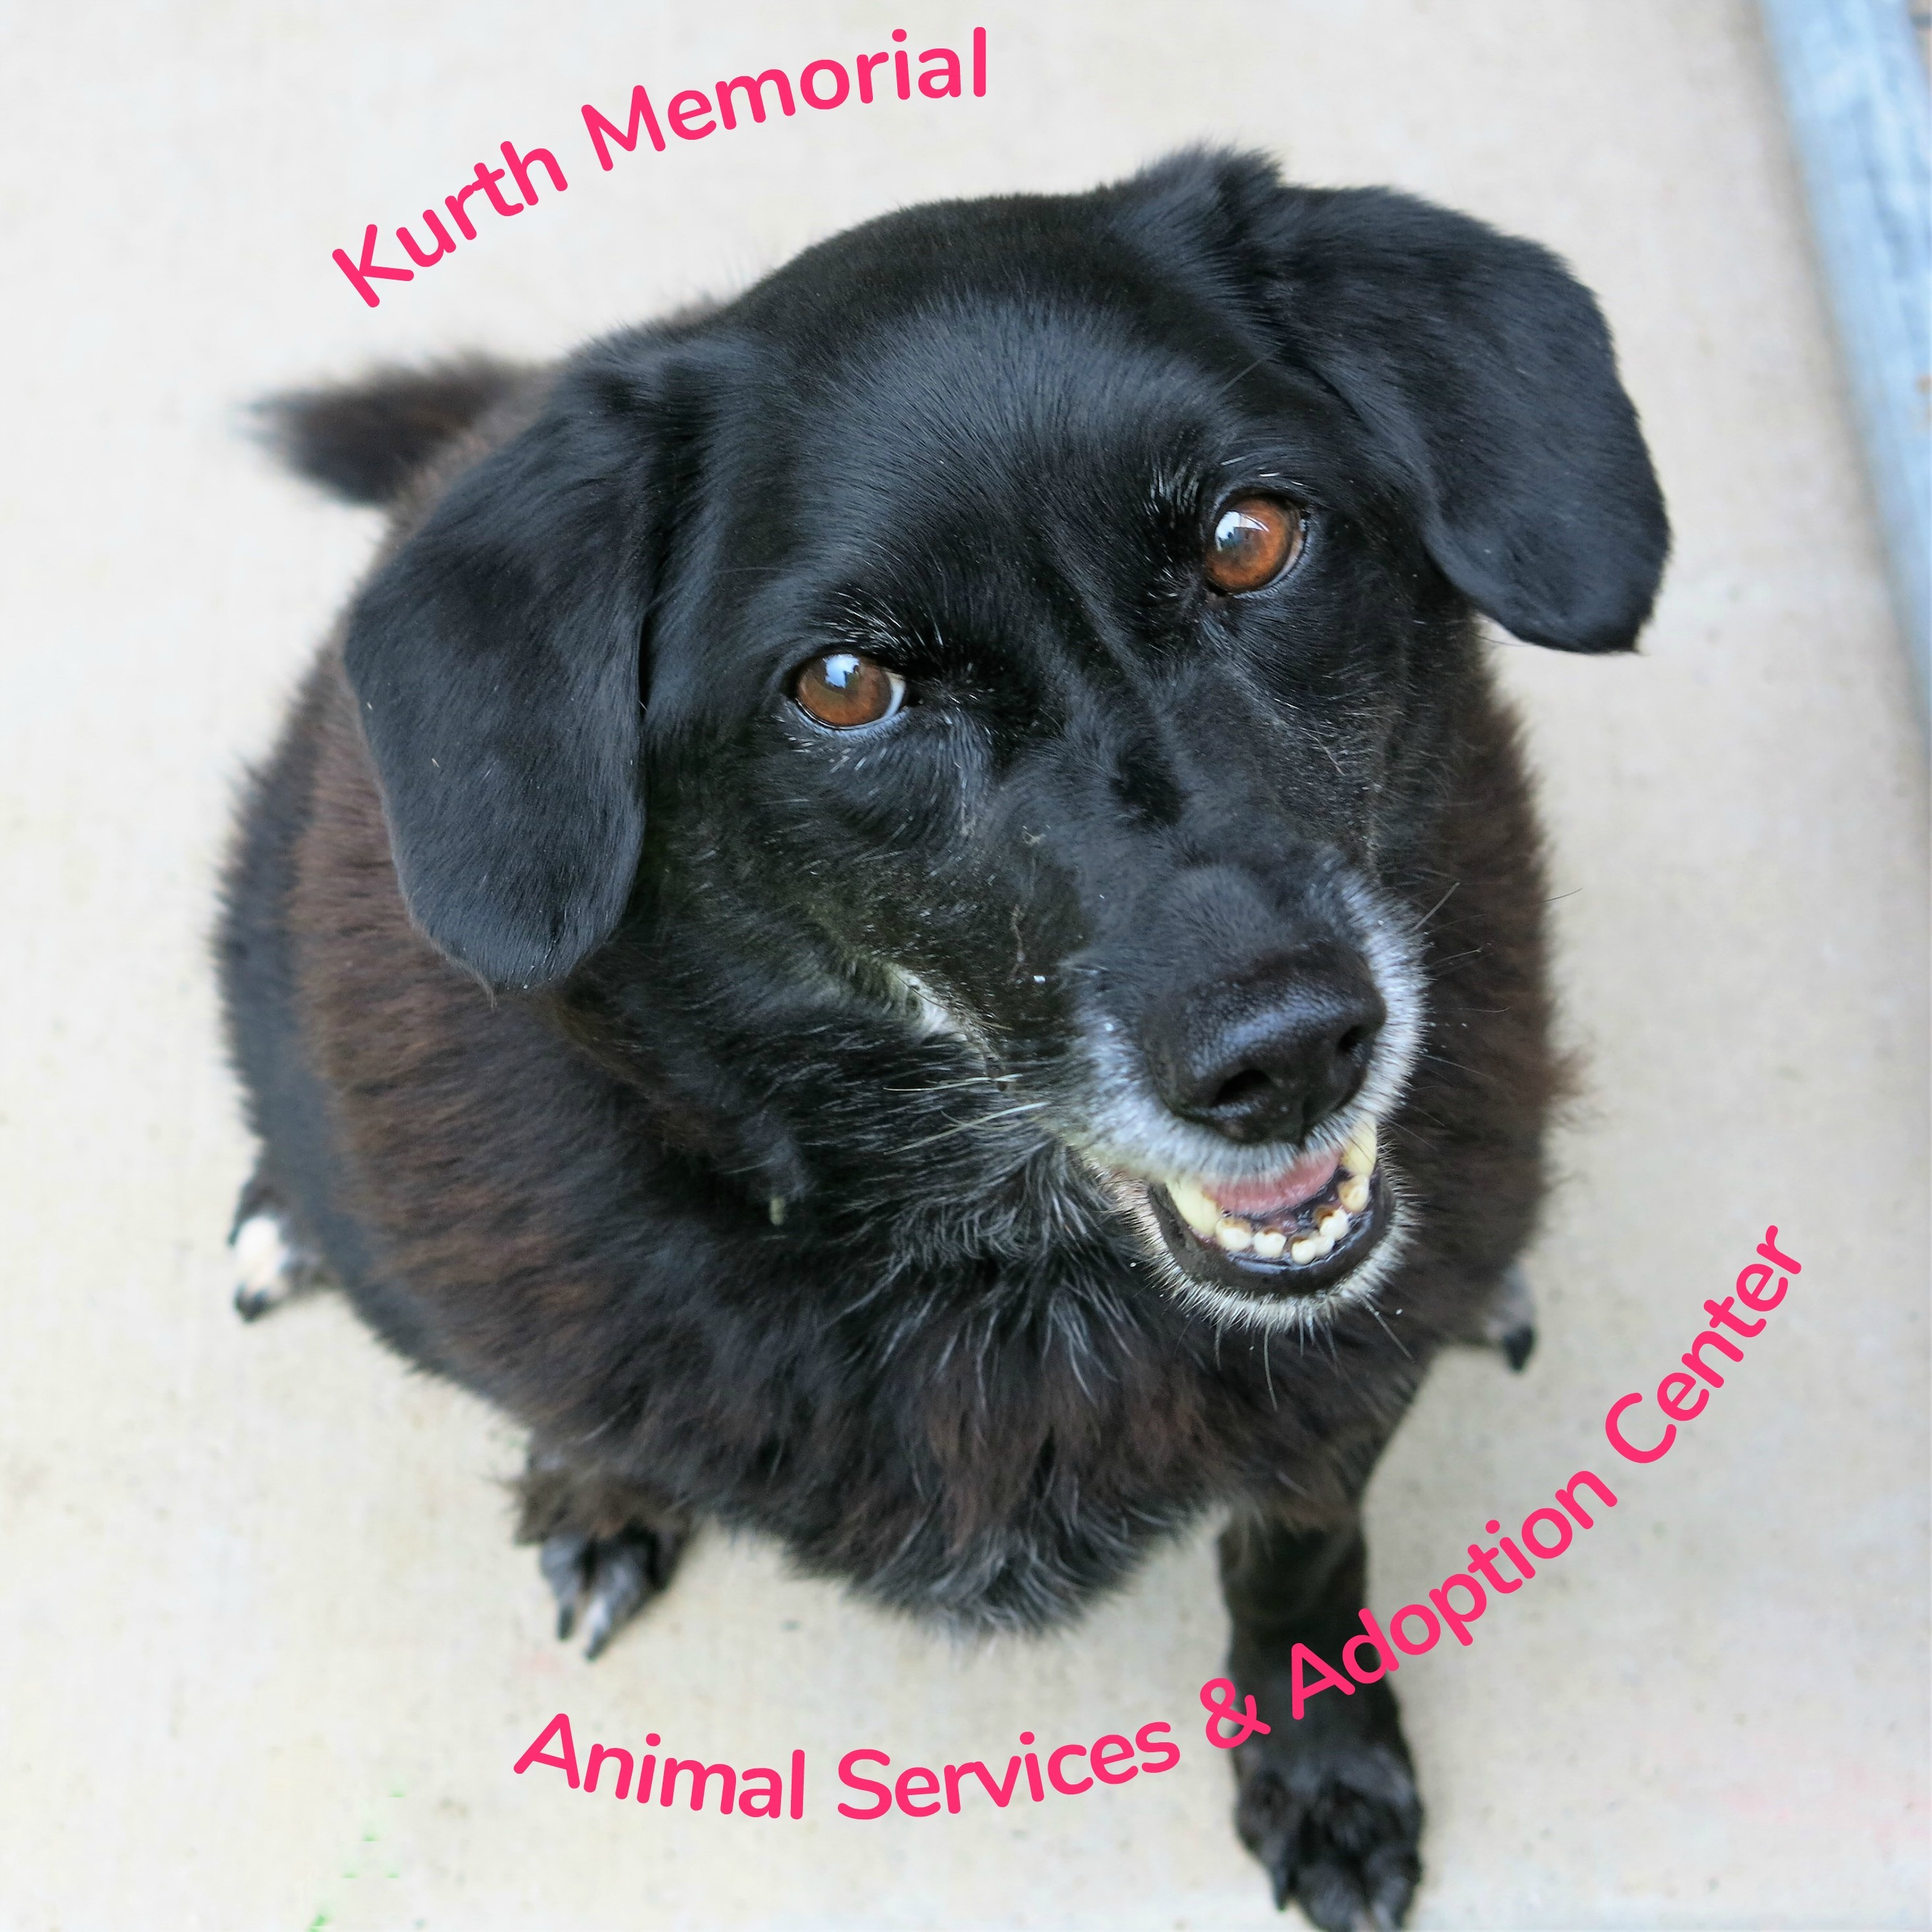 Kurth Memorial Animal Services & Adoption Center